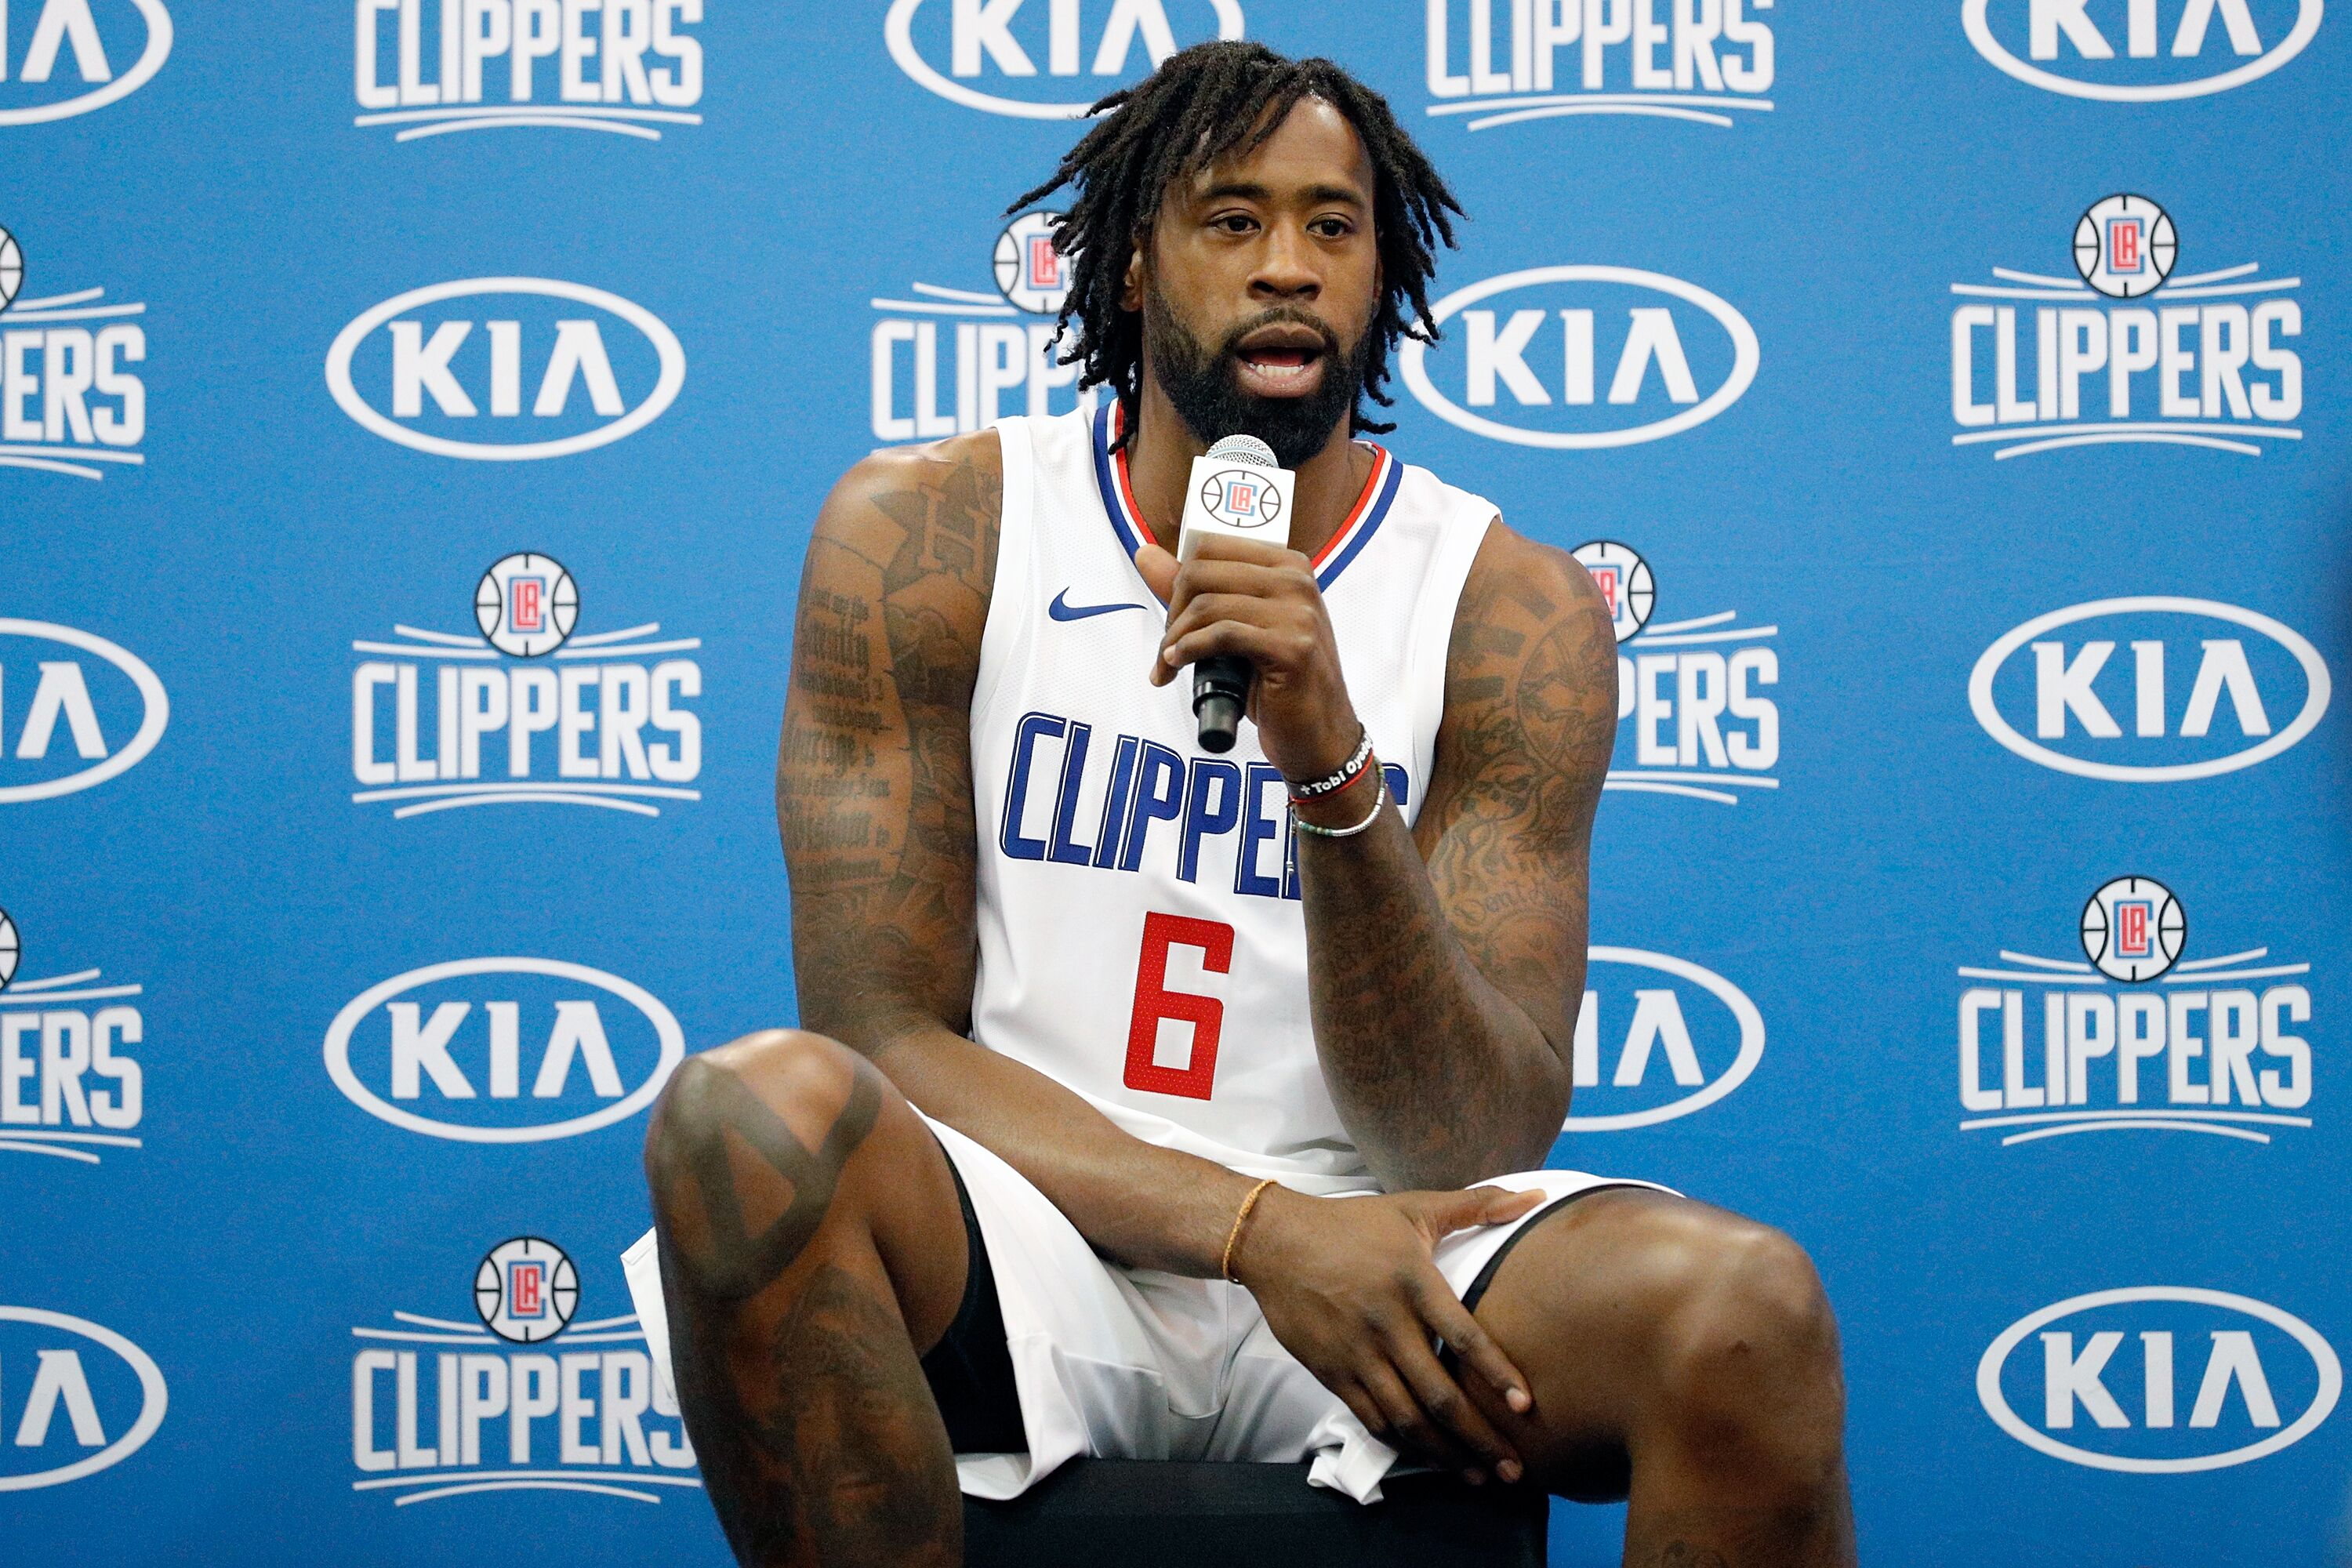 853777390-los-angeles-clippers-media-day.jpg